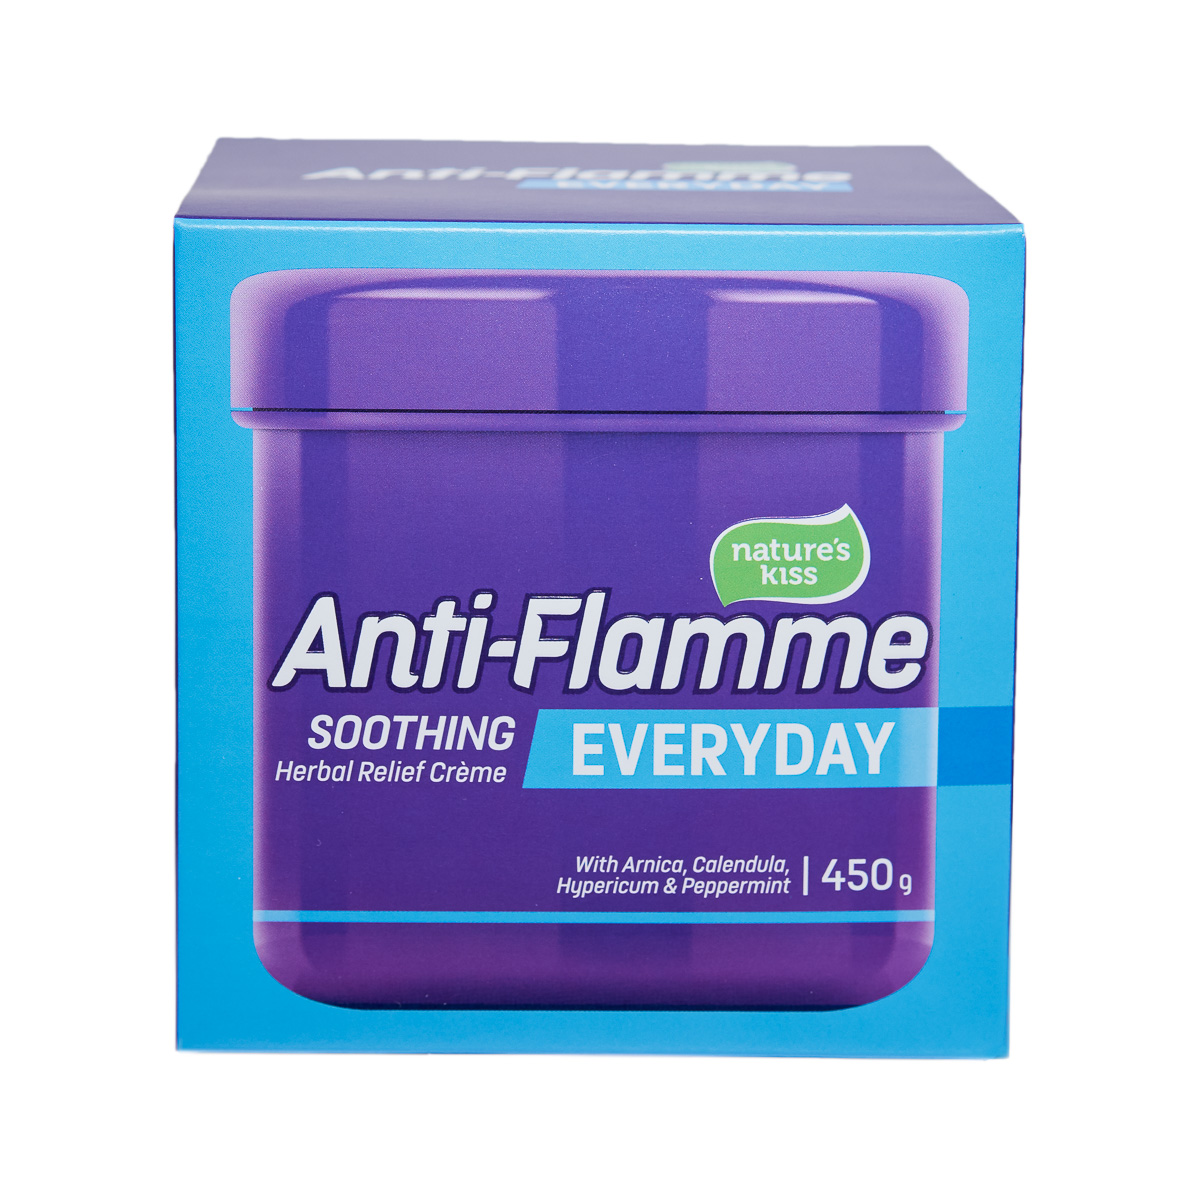 23451040 Anti-Flamme Everyday 450g - FRONT